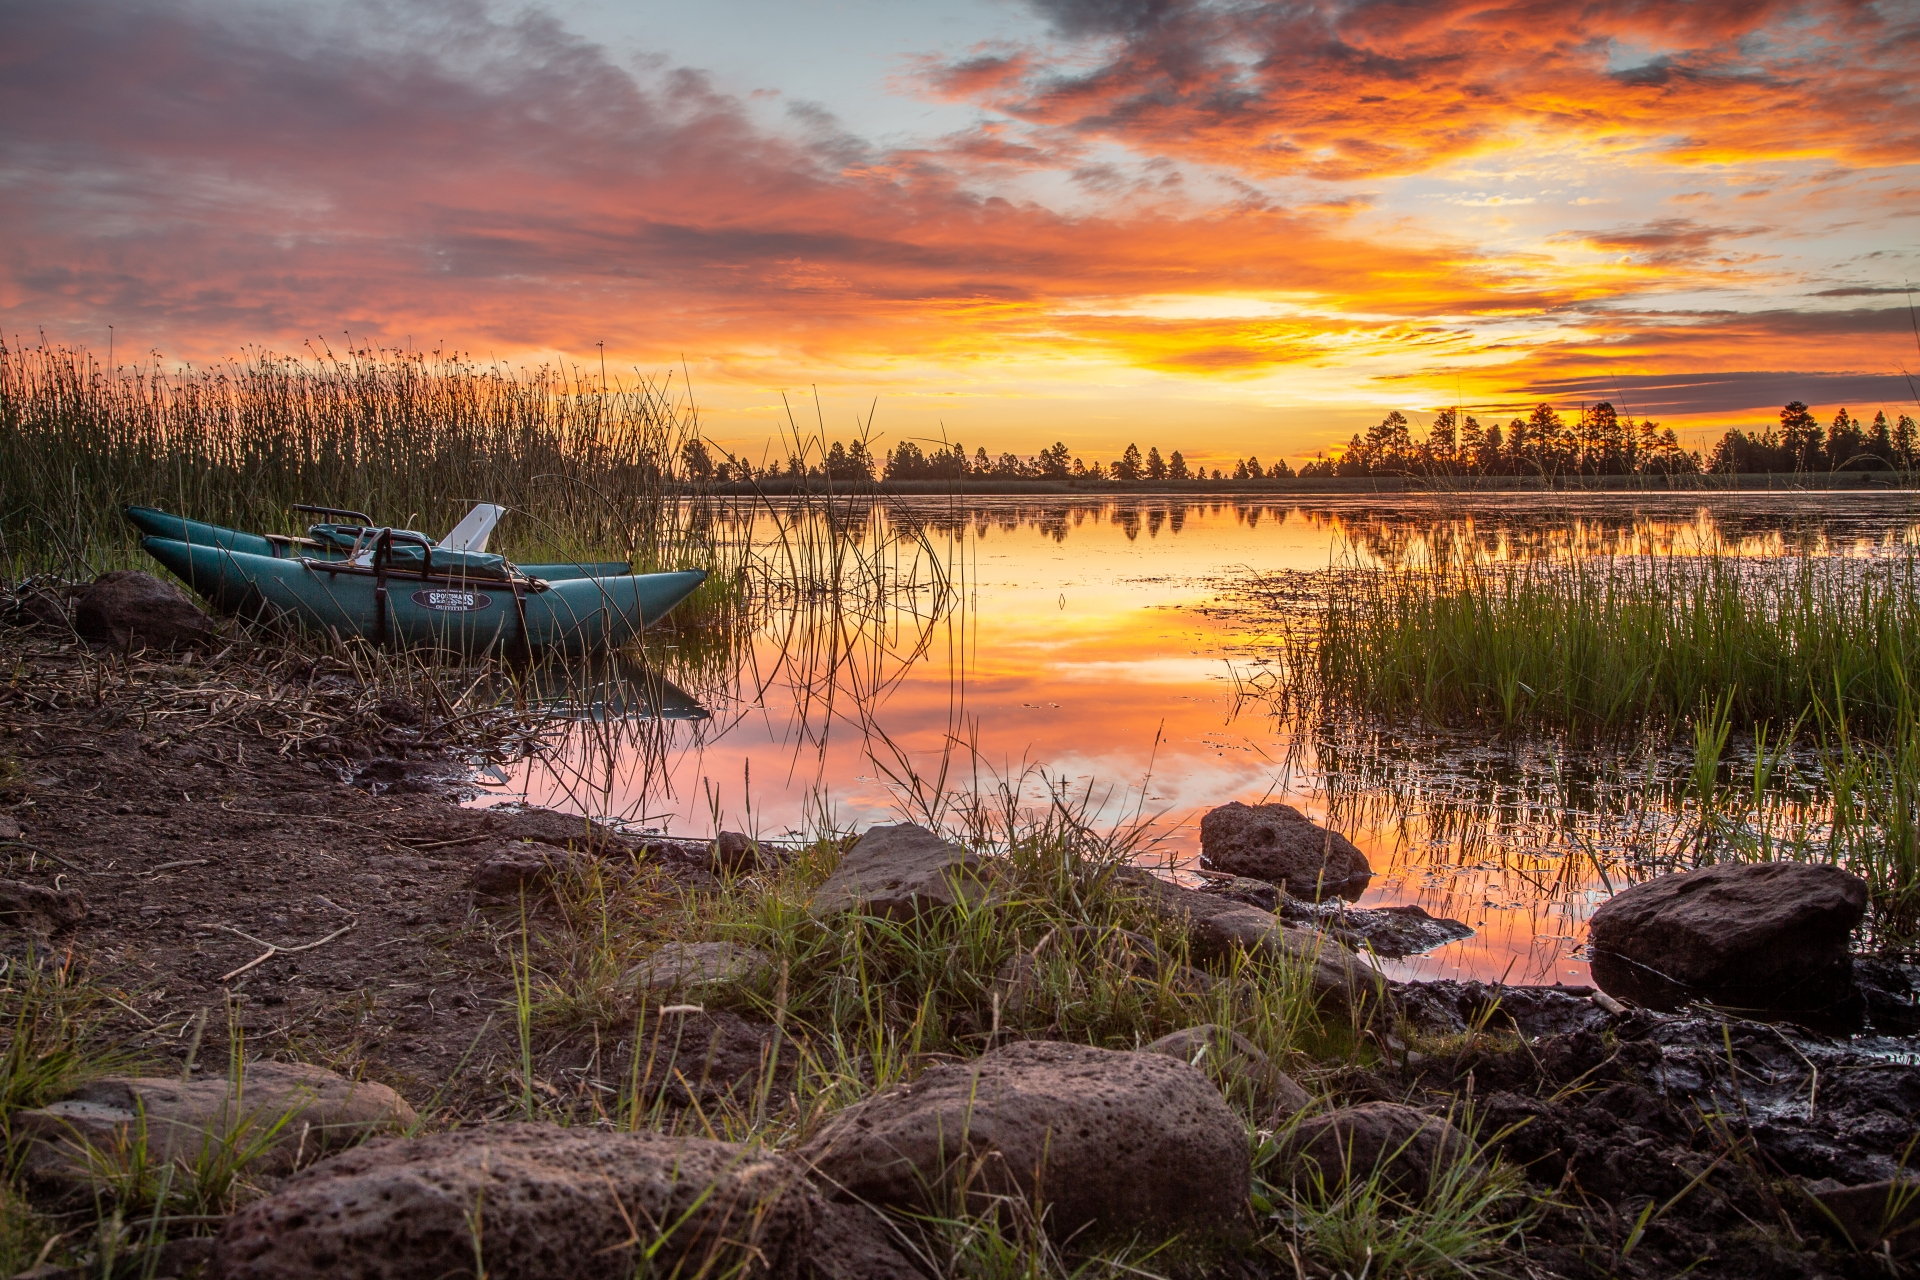 A pontoon boat on the shore of a lake at sunset